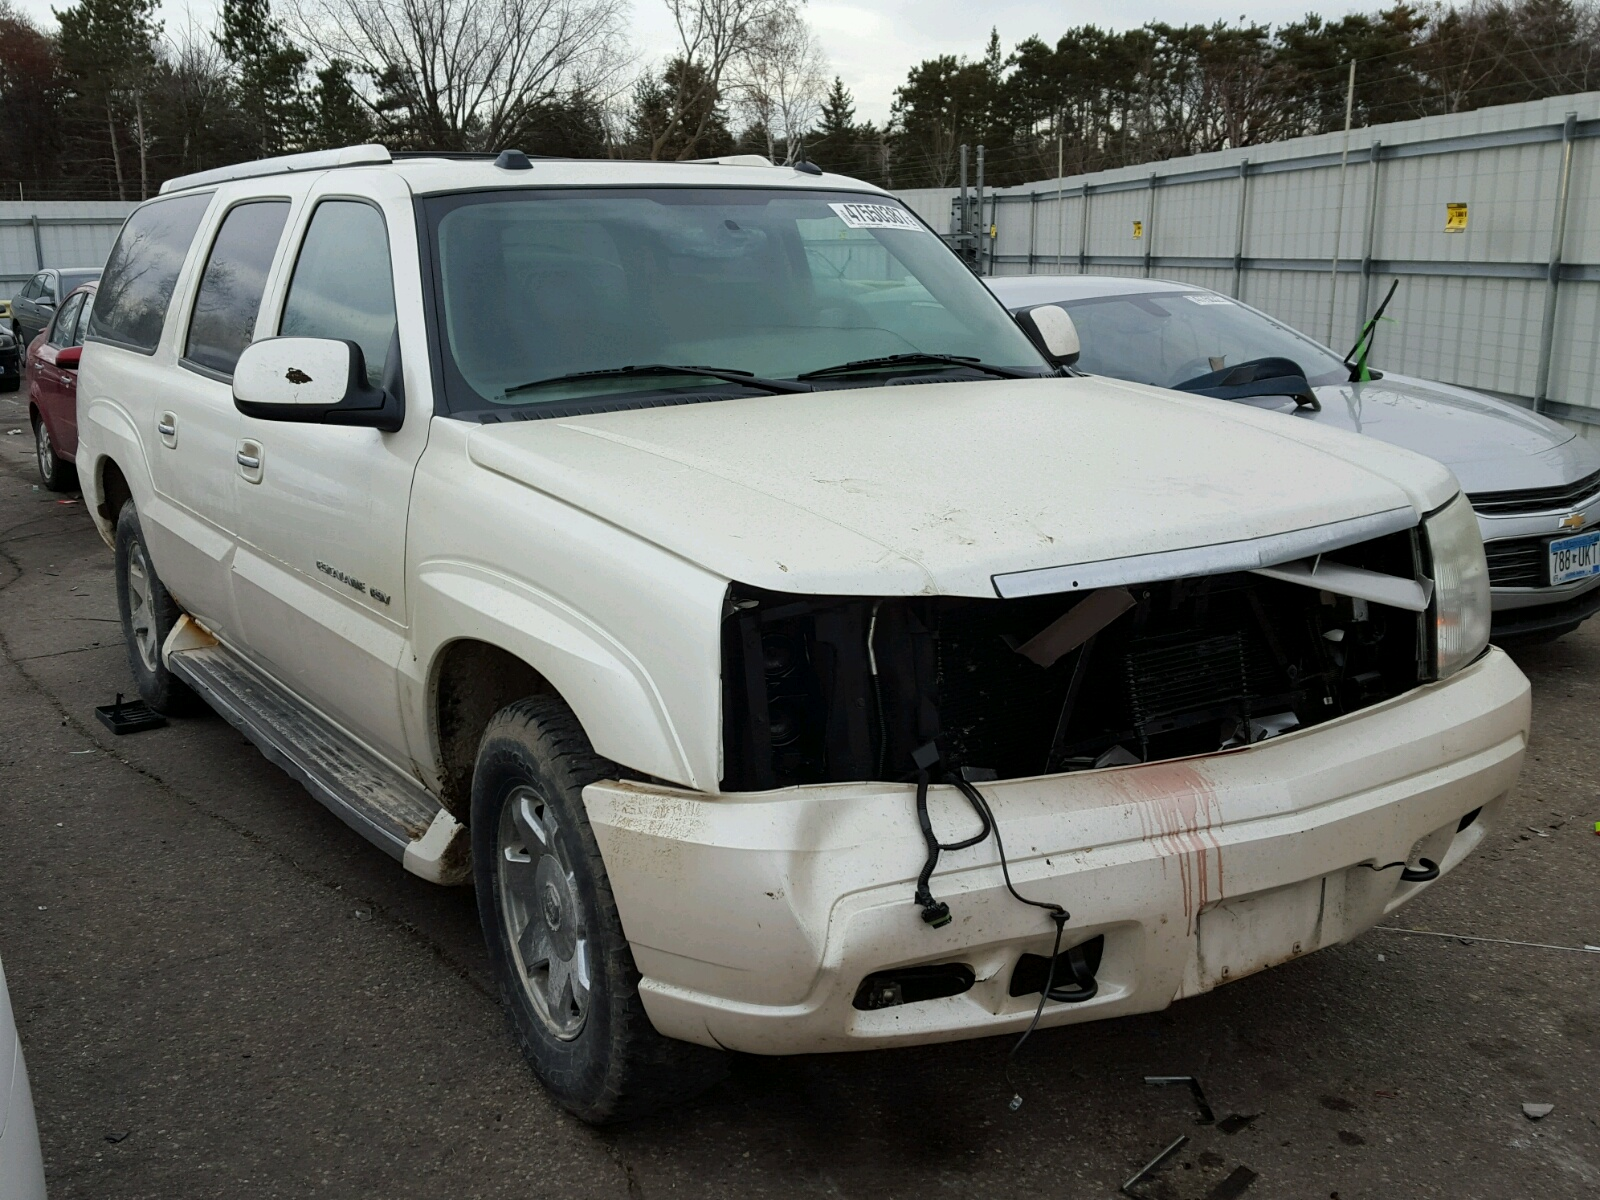 sale salvage copart cert online for cadillac view auctions beige en title carfinder montgomery lot al auto of on escalade l in left